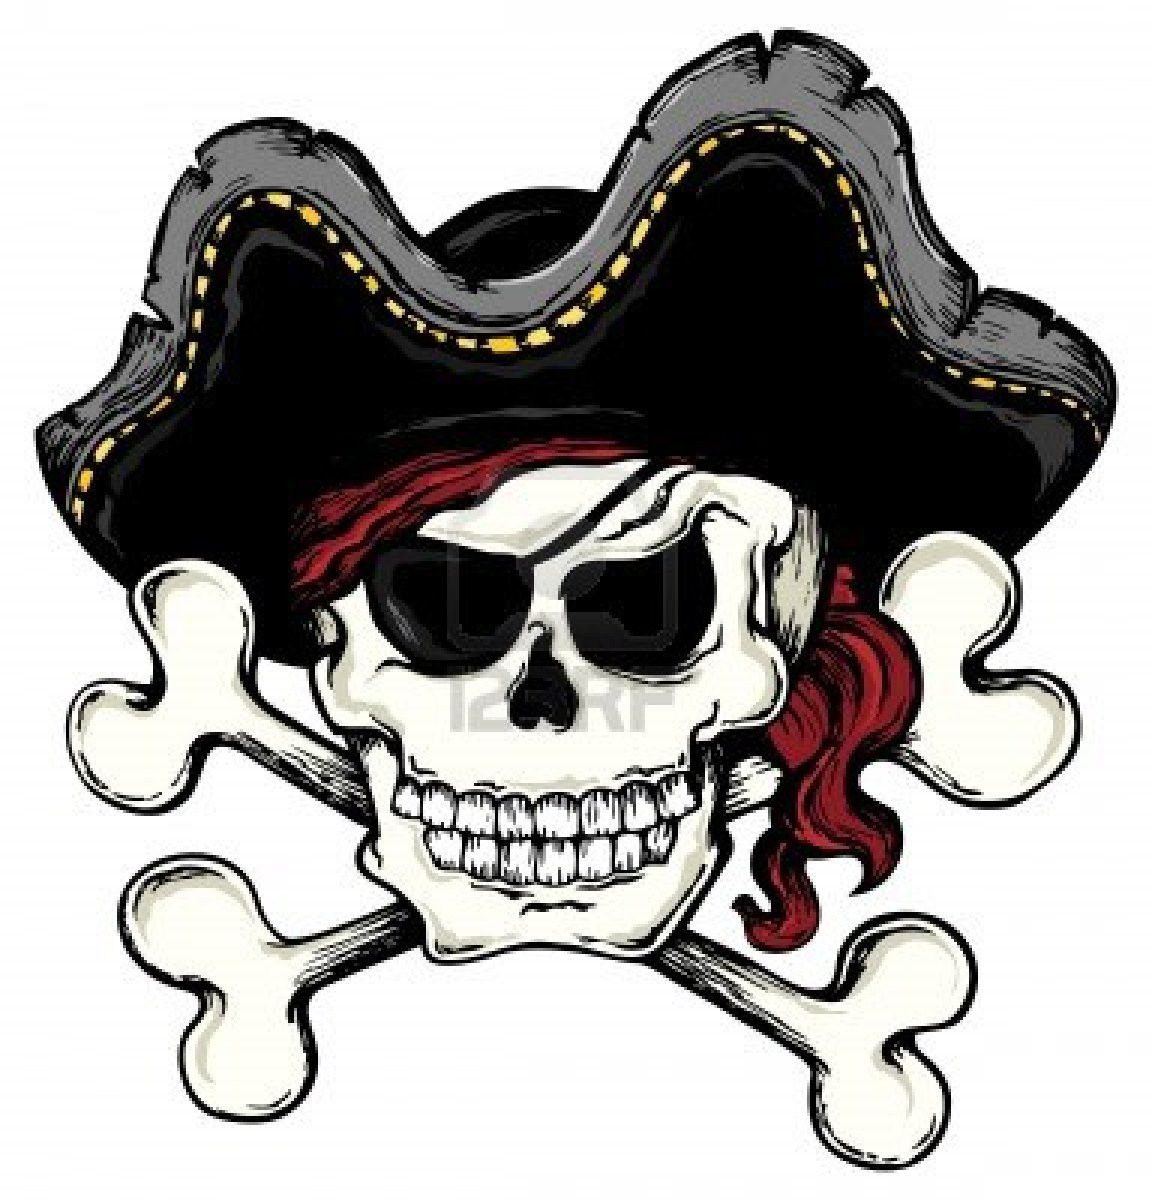 Vintage Pirate Skull Theme Pirate Skull Pirate Pictures Pirate Images